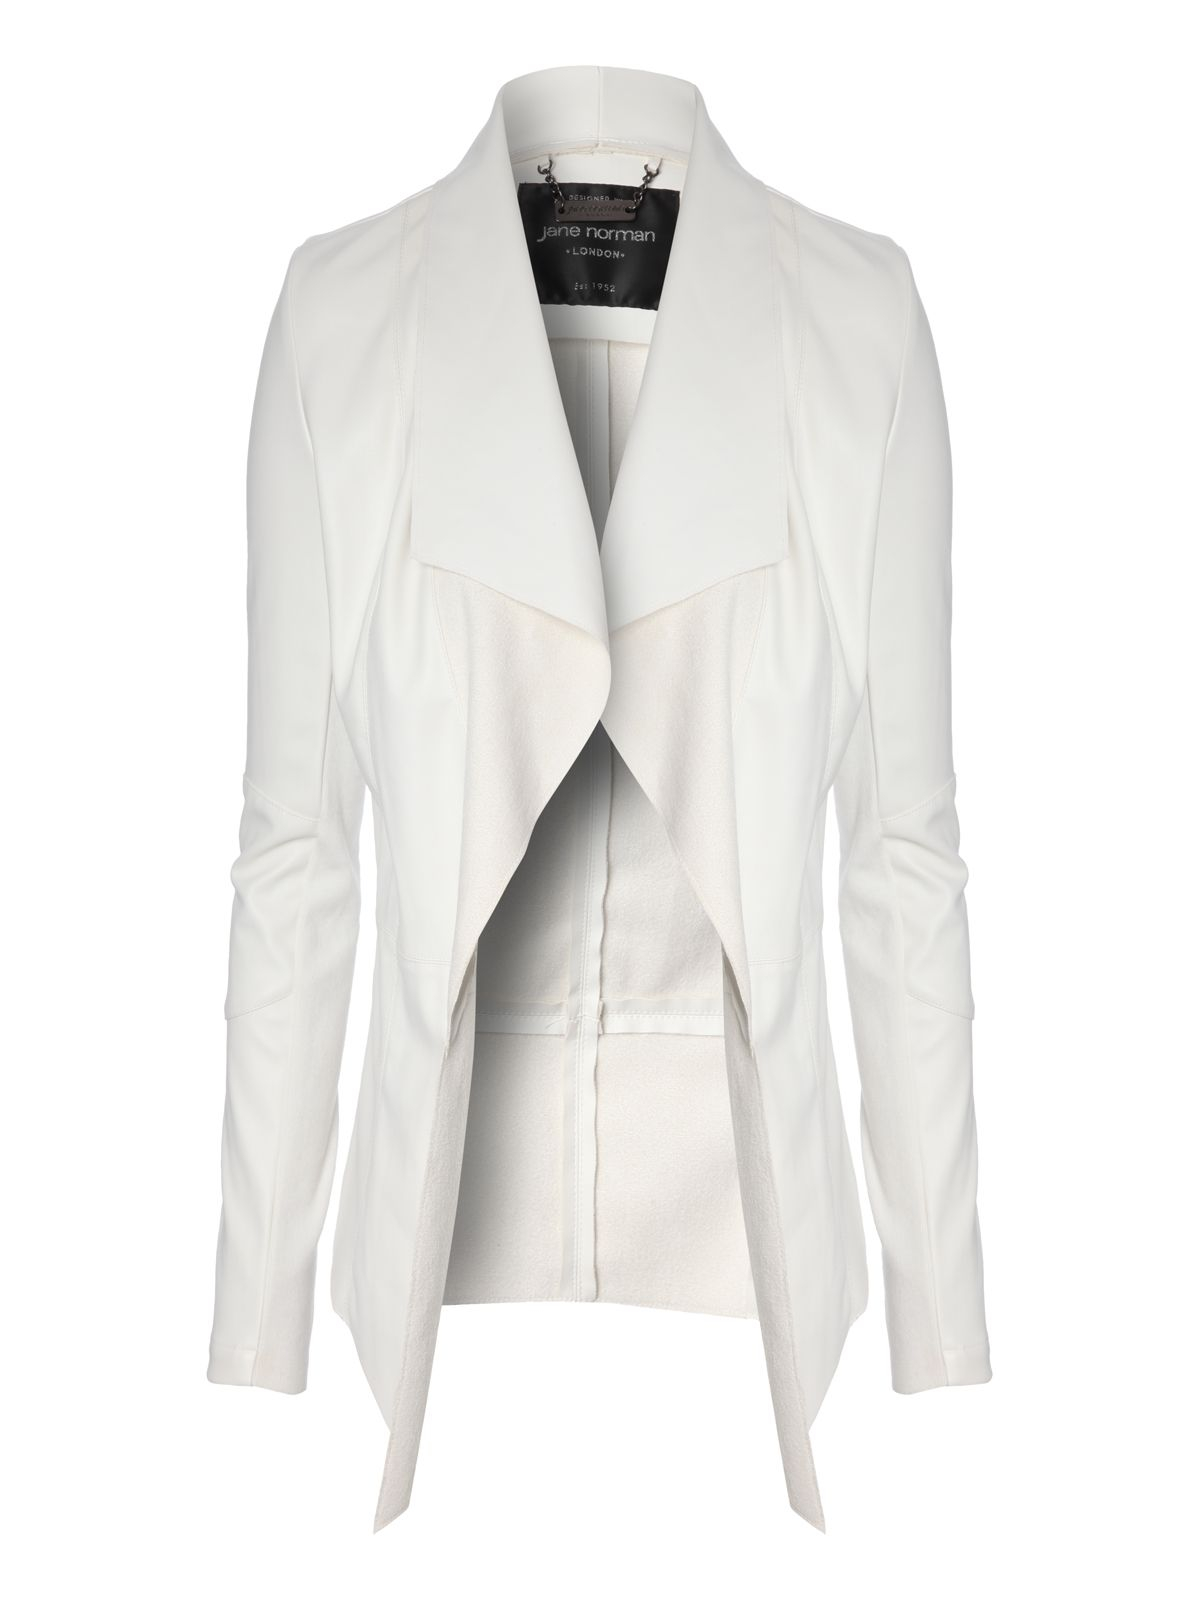 Jane norman Long Sleeve Pu Waterfall Jacket in White | Lyst